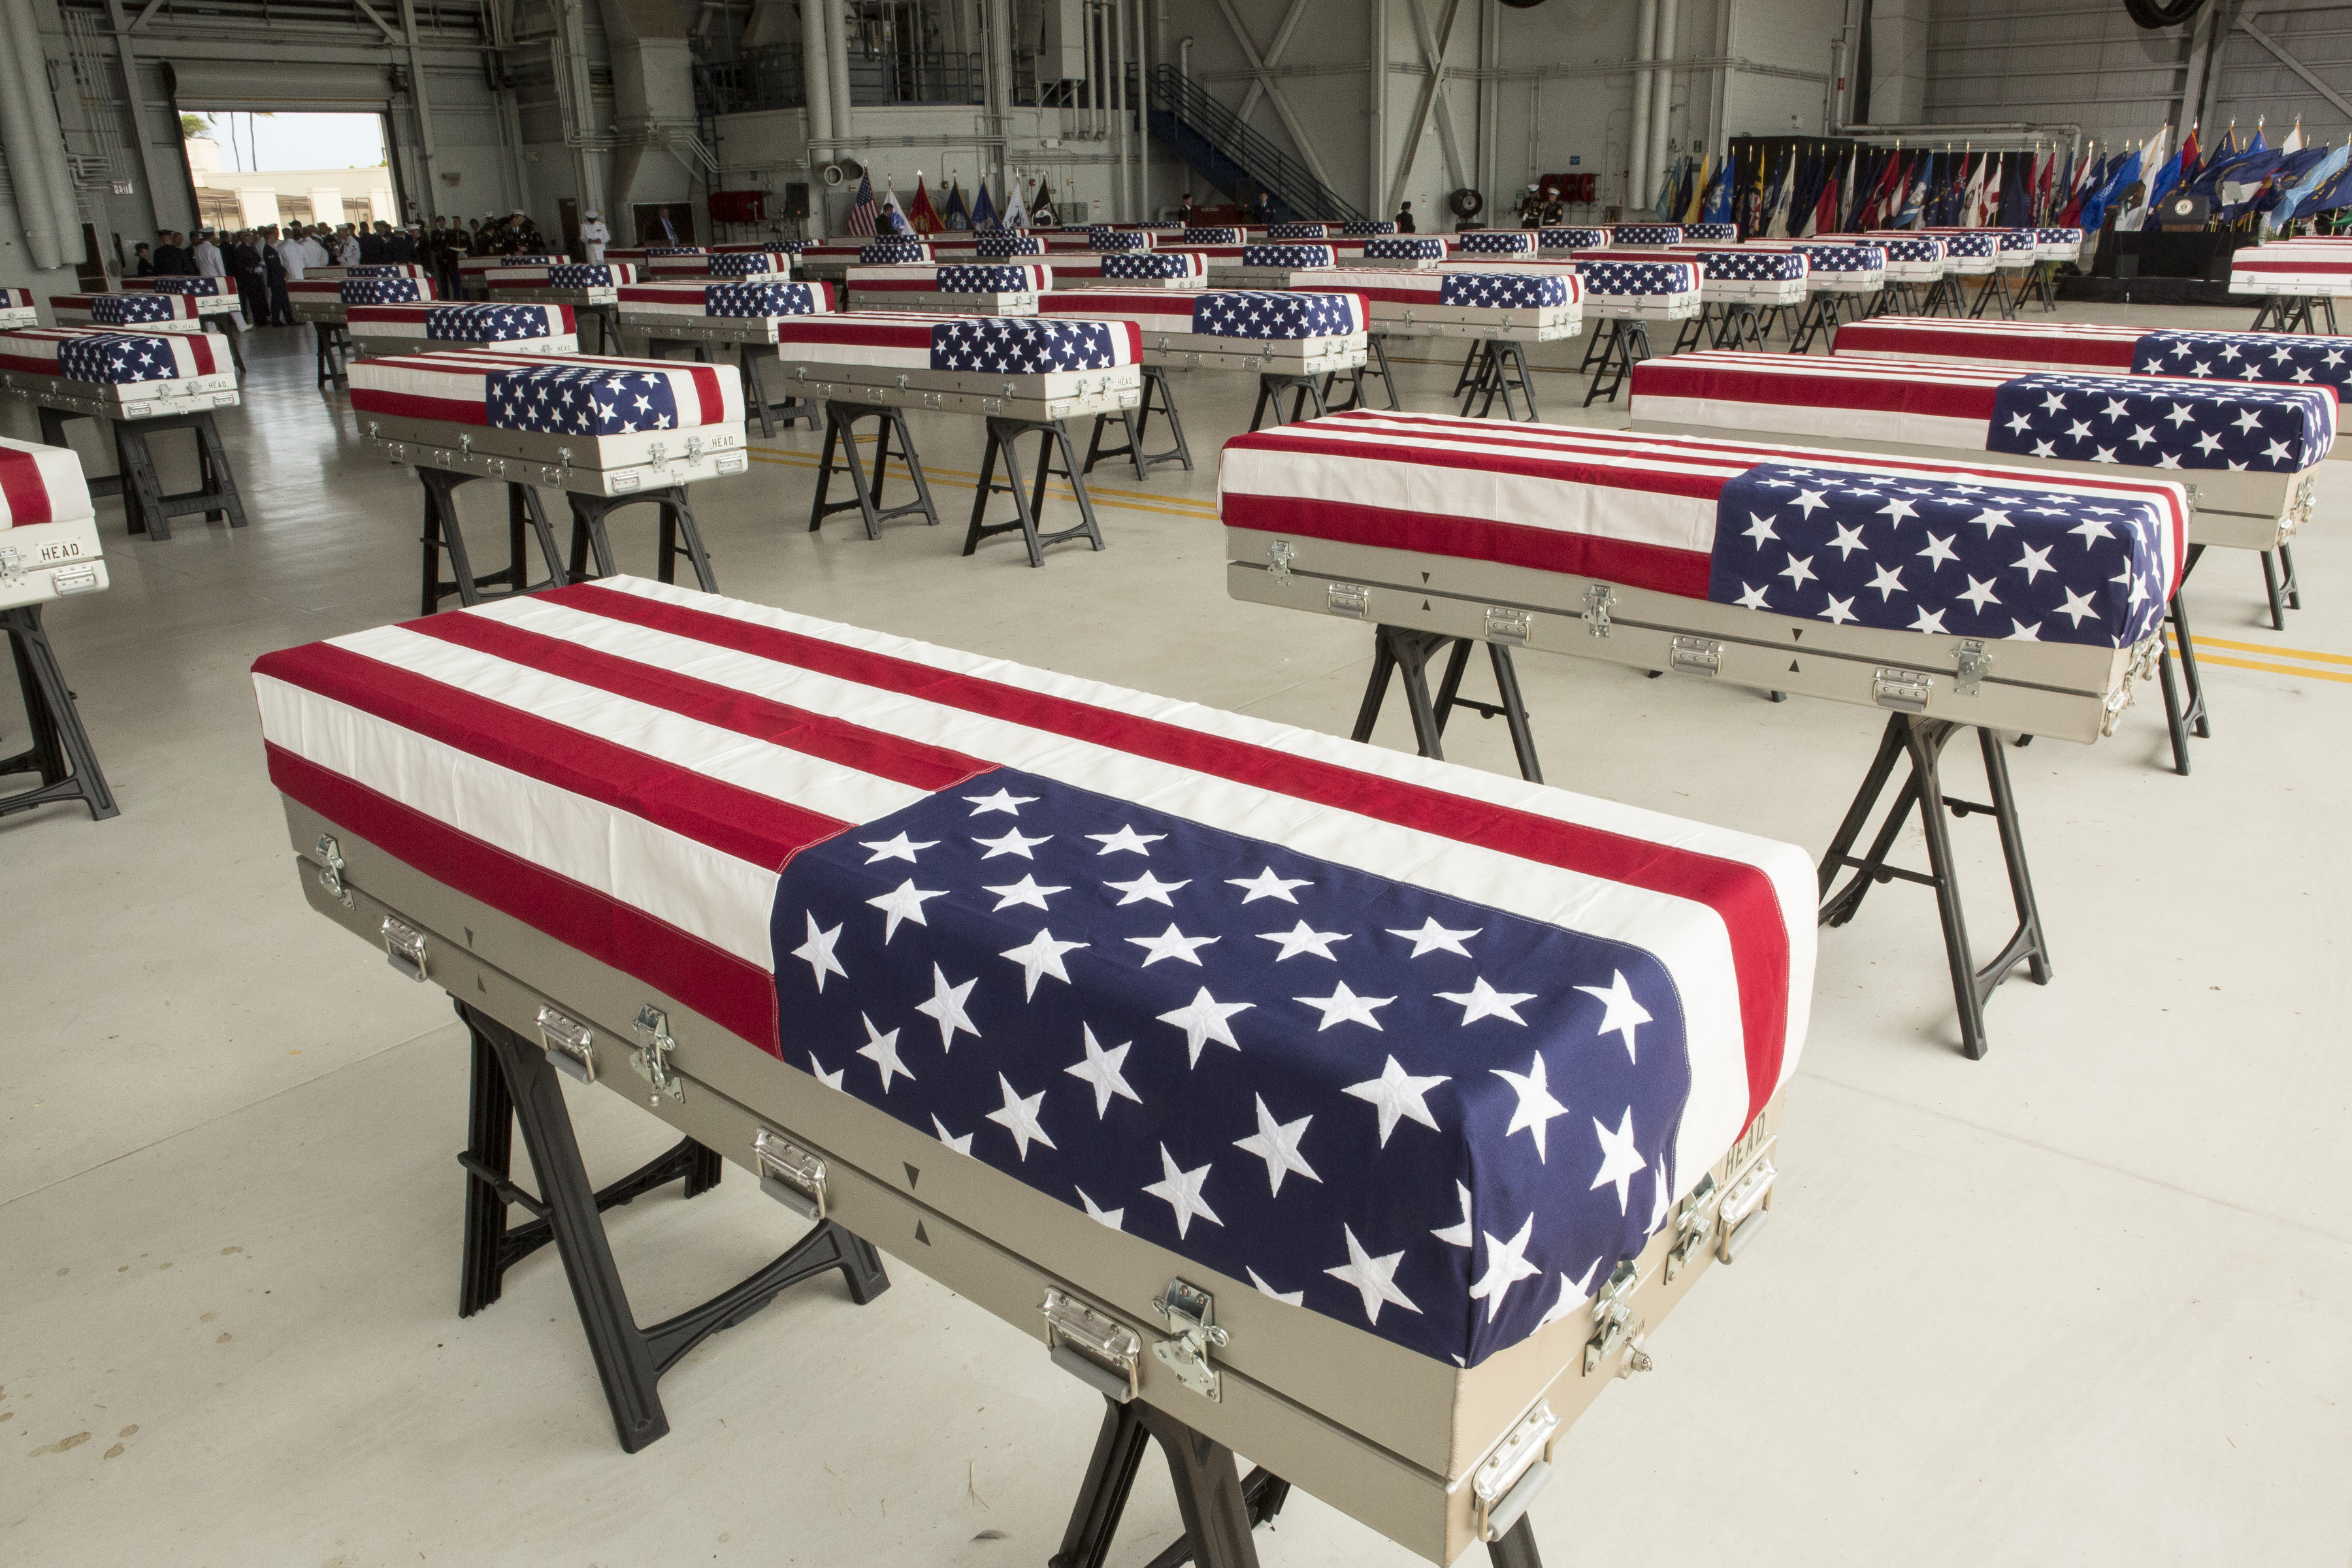 Military personnel bring in the presumed remains of US soldiers in 55 caskets draped with American flags into Hanger 19 Joint base Pearl Harbor Hickam on August 1, 2018 in Honolulu, Hawaii. (Kat Wade—Getty Images)